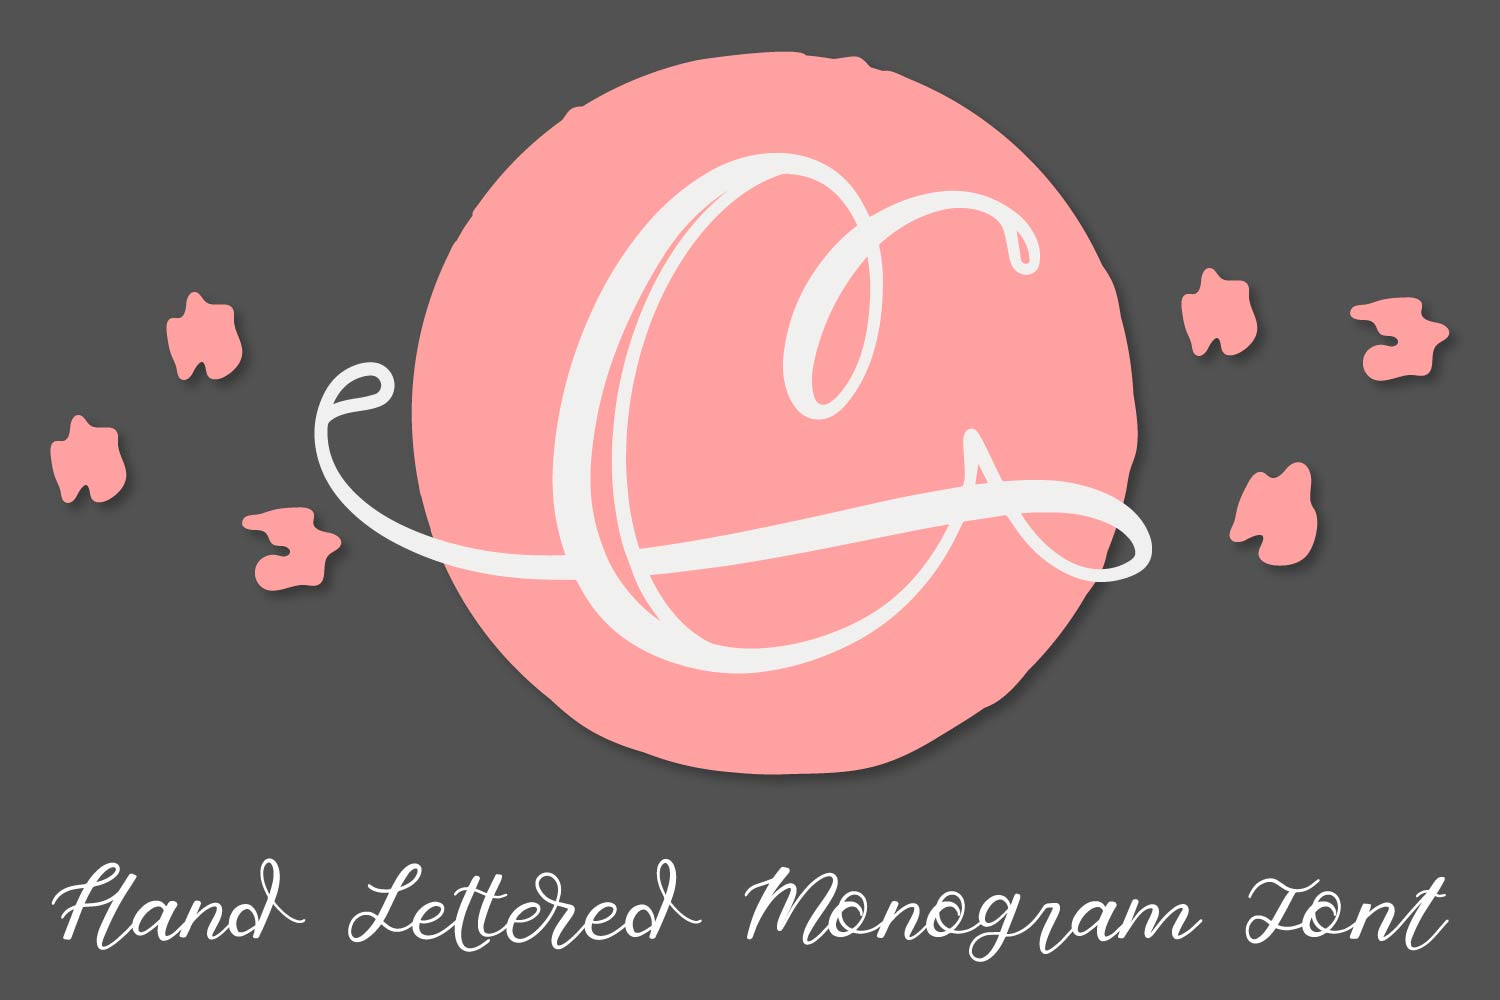 Hand Lettered Monogram Font - Perfect For Personalization! example image 8